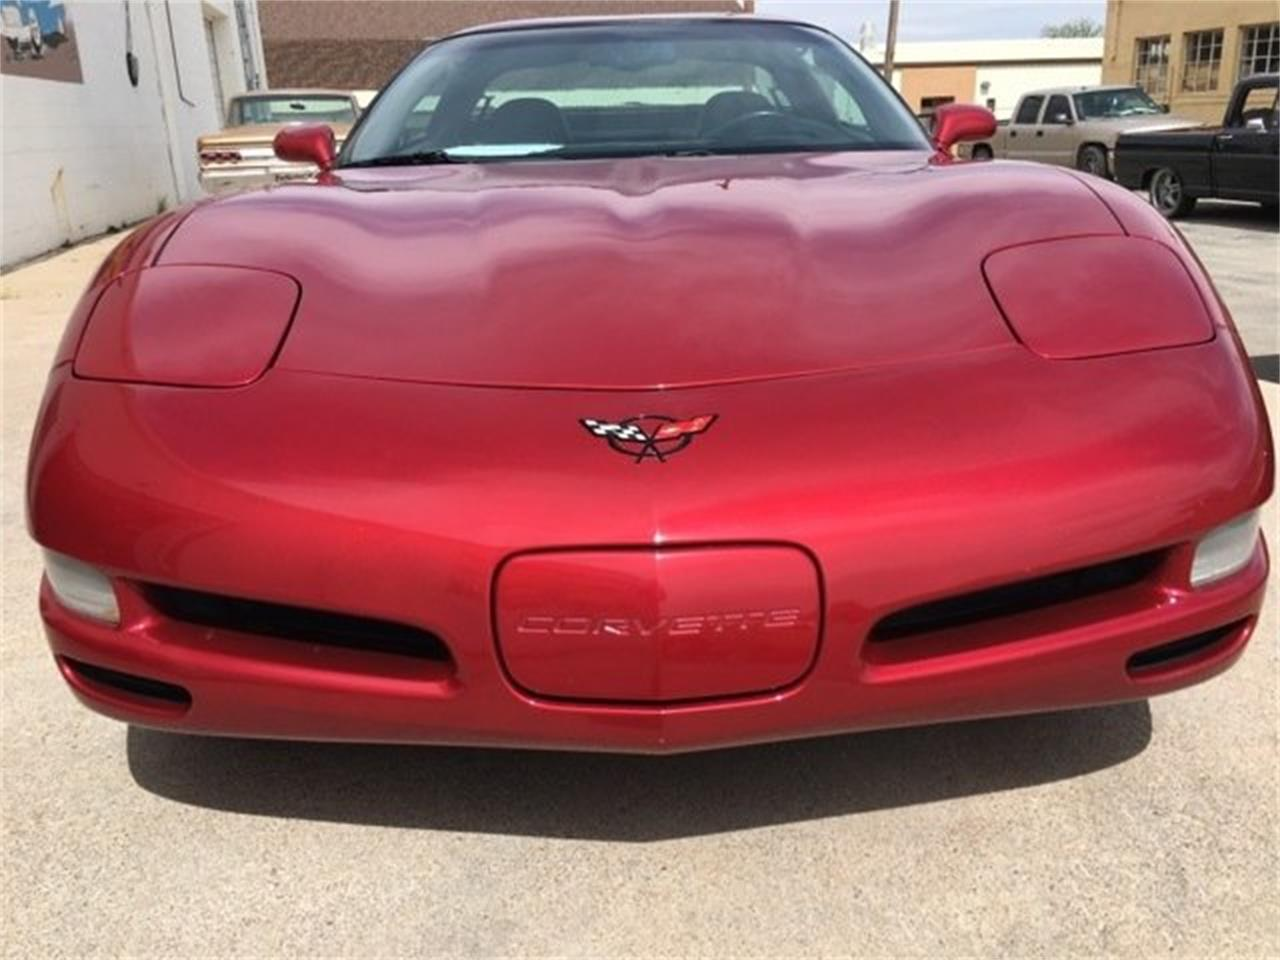 Large Picture of 2002 Chevrolet Corvette located in Midland Texas - PWBK